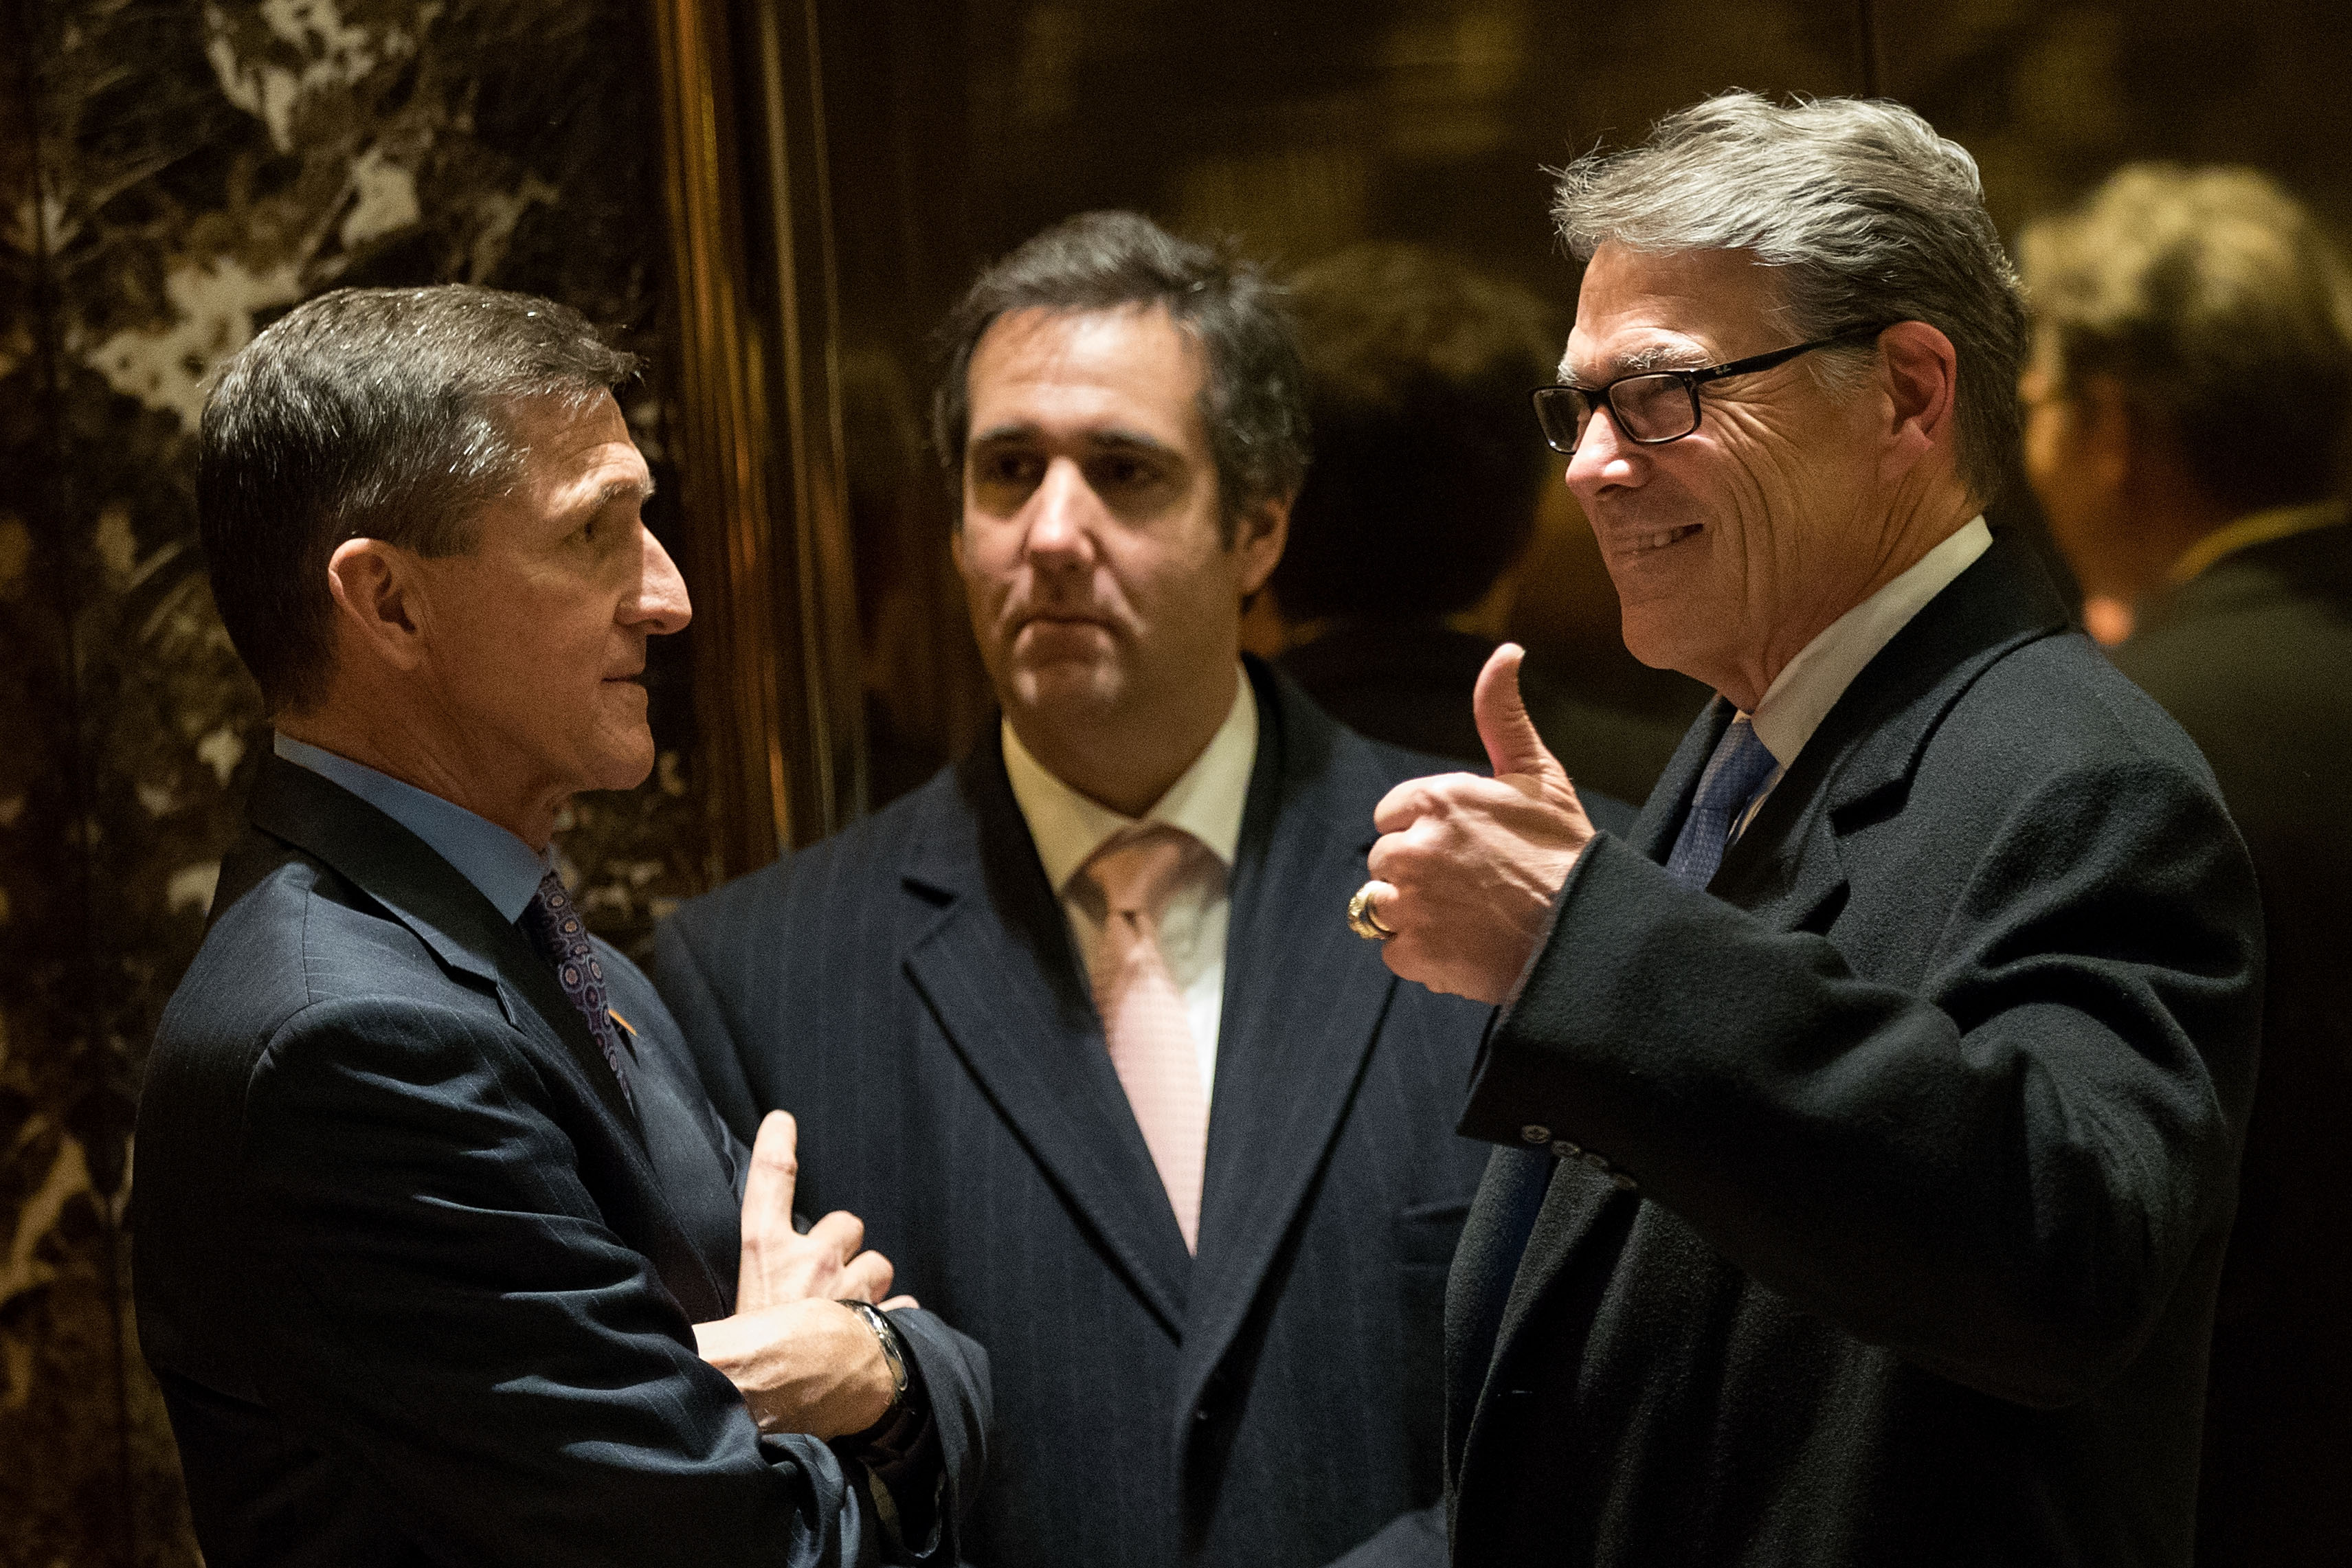 Retired Lt. Gen. Michael Flynn, Michael Cohen, executive vice president of the Trump Organization and special counsel to Donald Trump, and former Texas Governor Rick Perry at Trump Tower, Dec. 12, 2016 in New York City.